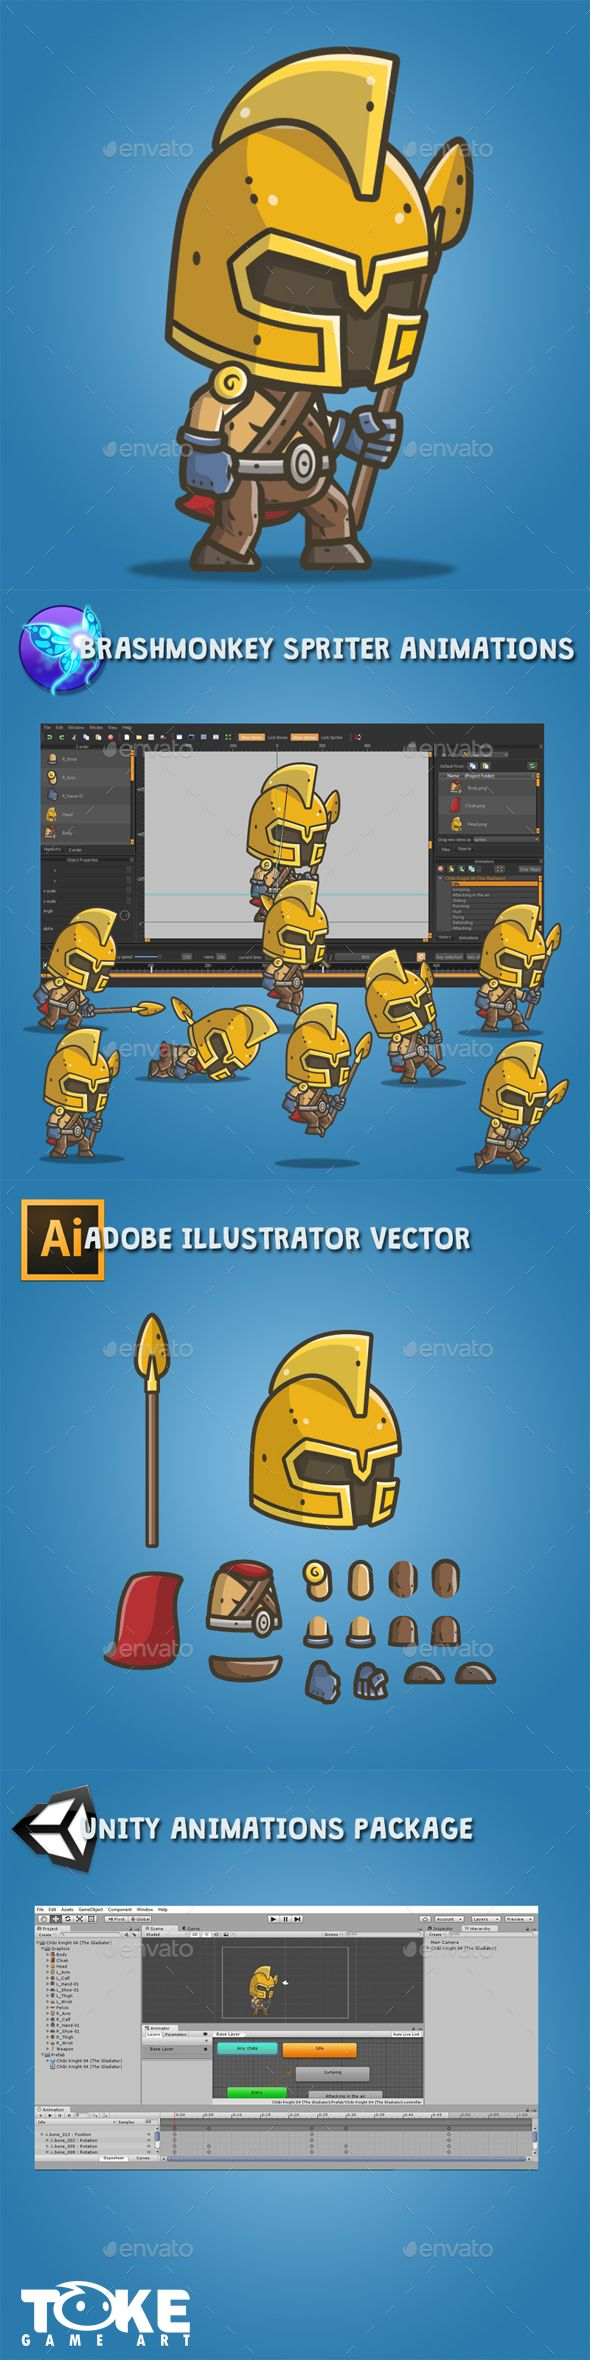 Chibi Knight – The Gladiator — Vector EPS #brashmonkey #Tokegameart • Available here → https://graphicriver.net/item/chibi-knight-the-gladiator/18177515?ref=pxcr